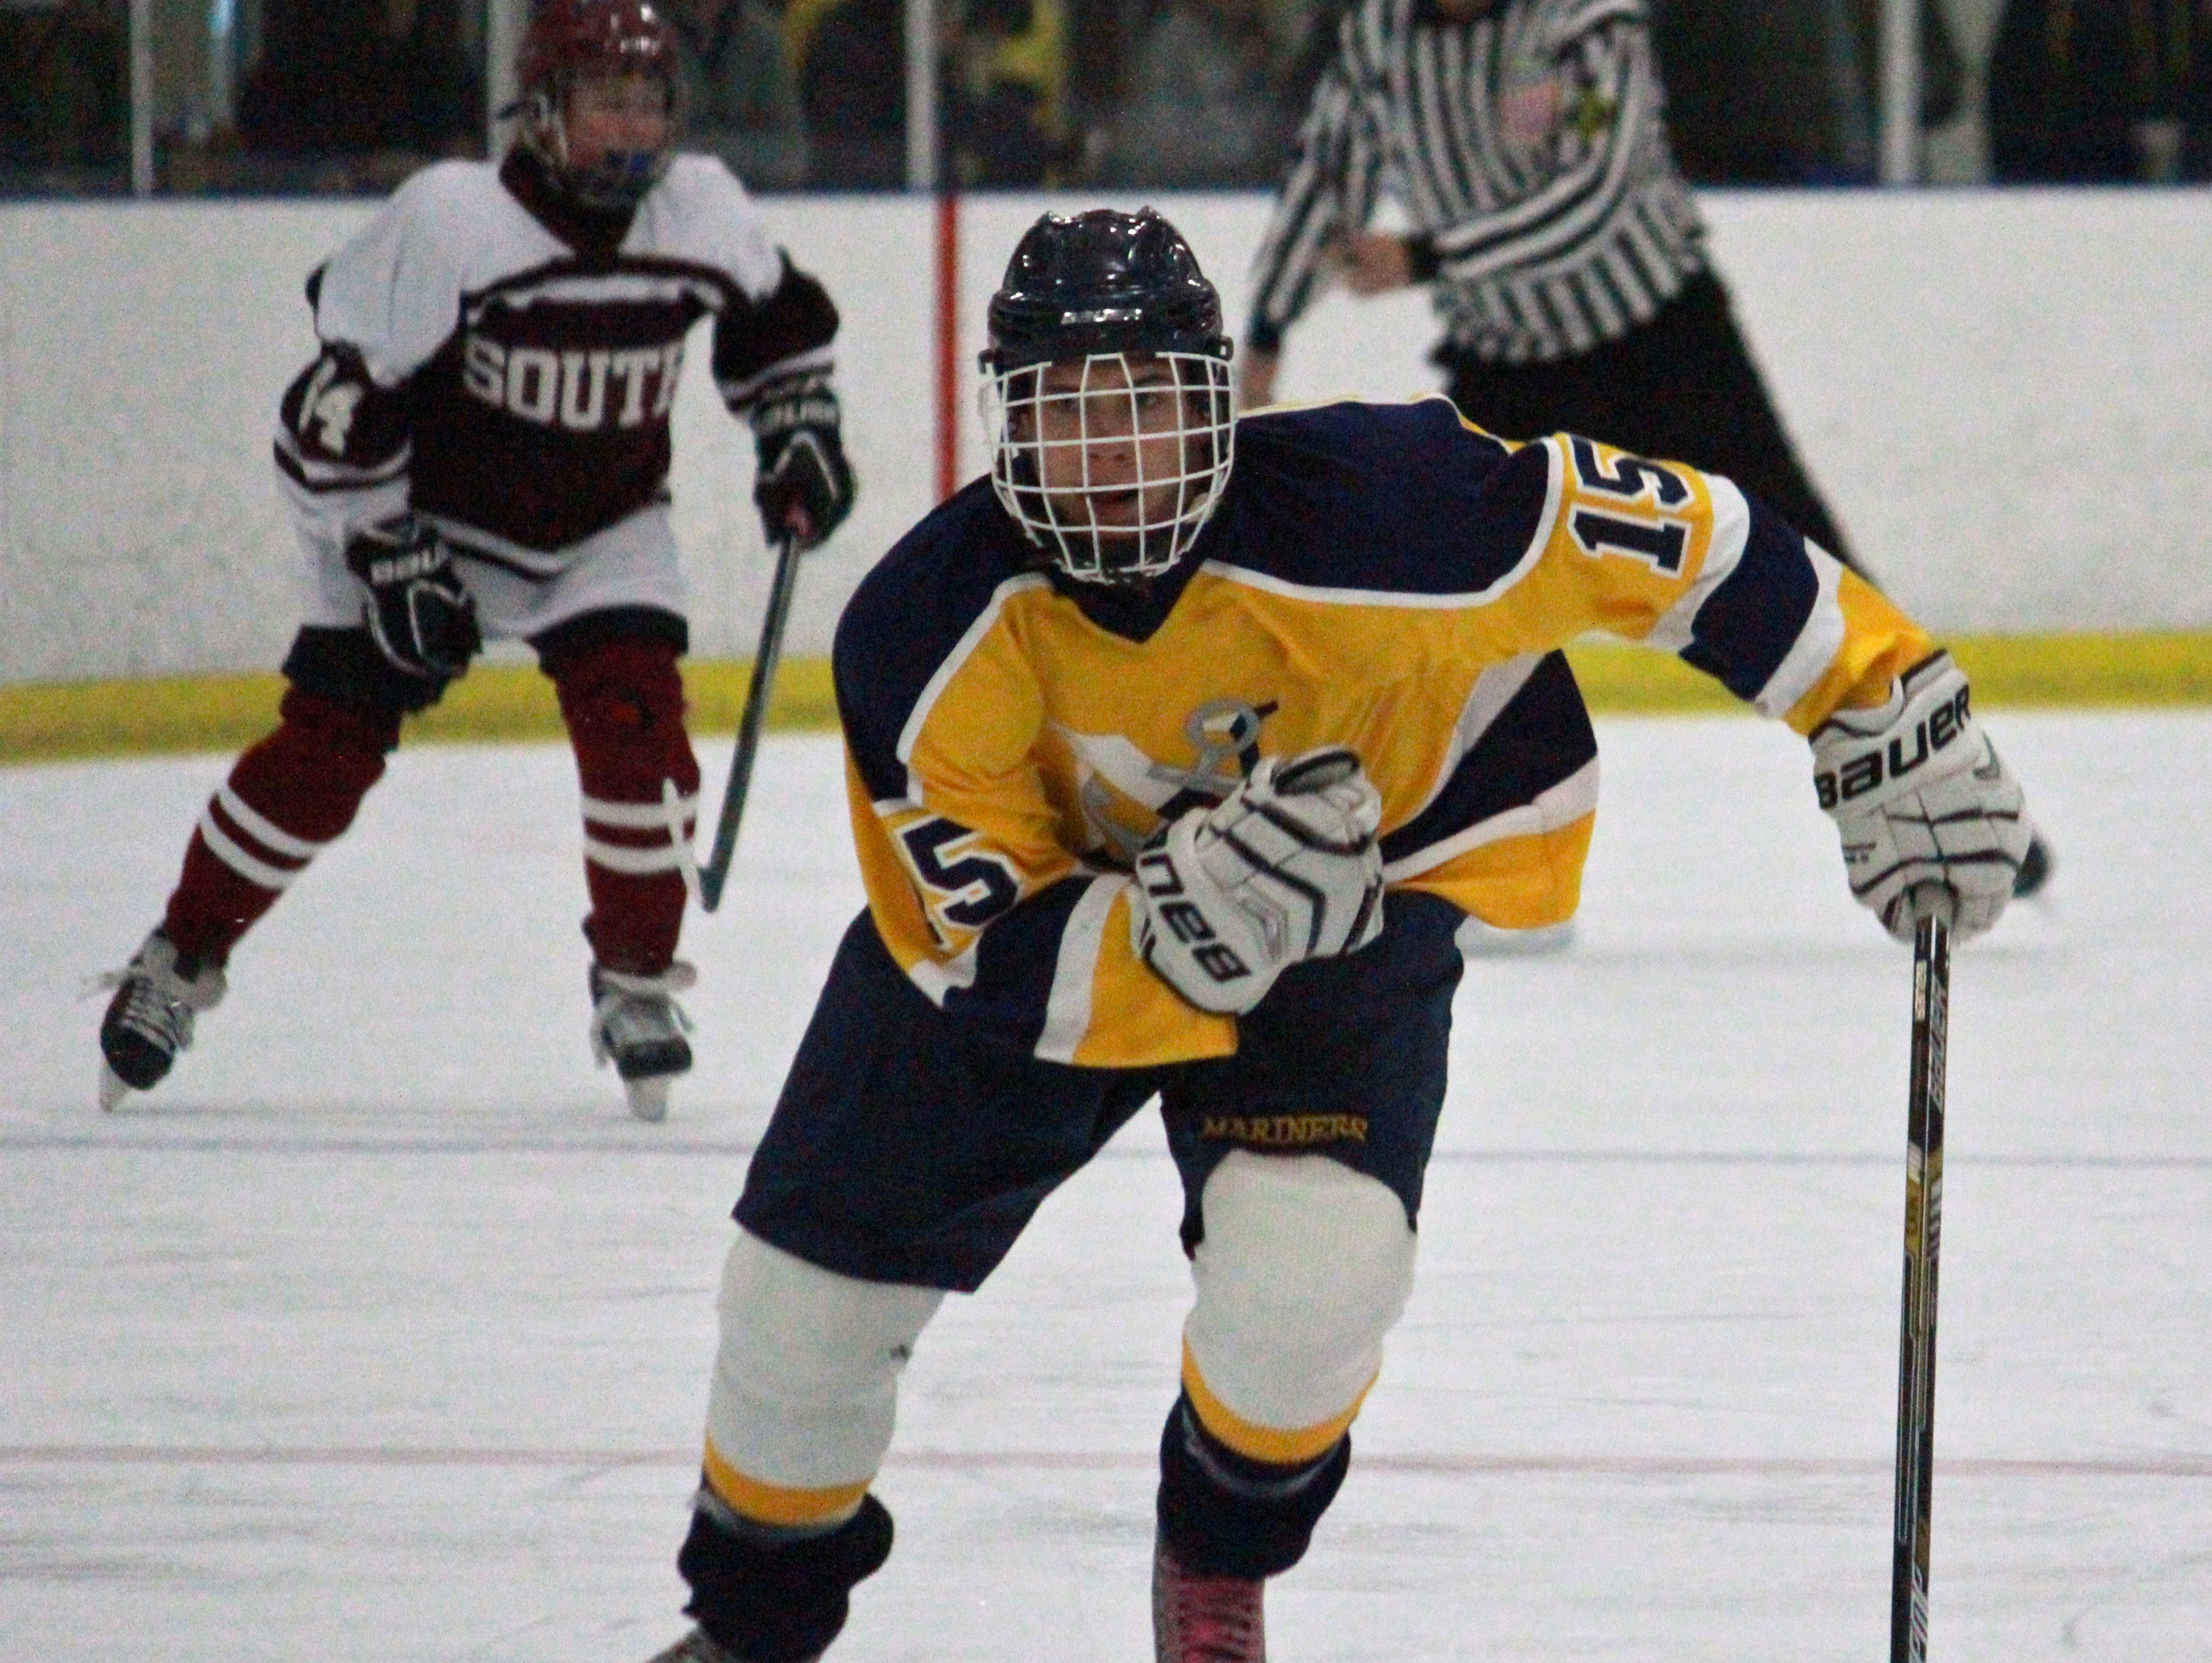 Nick Pica (15) of Toms River North